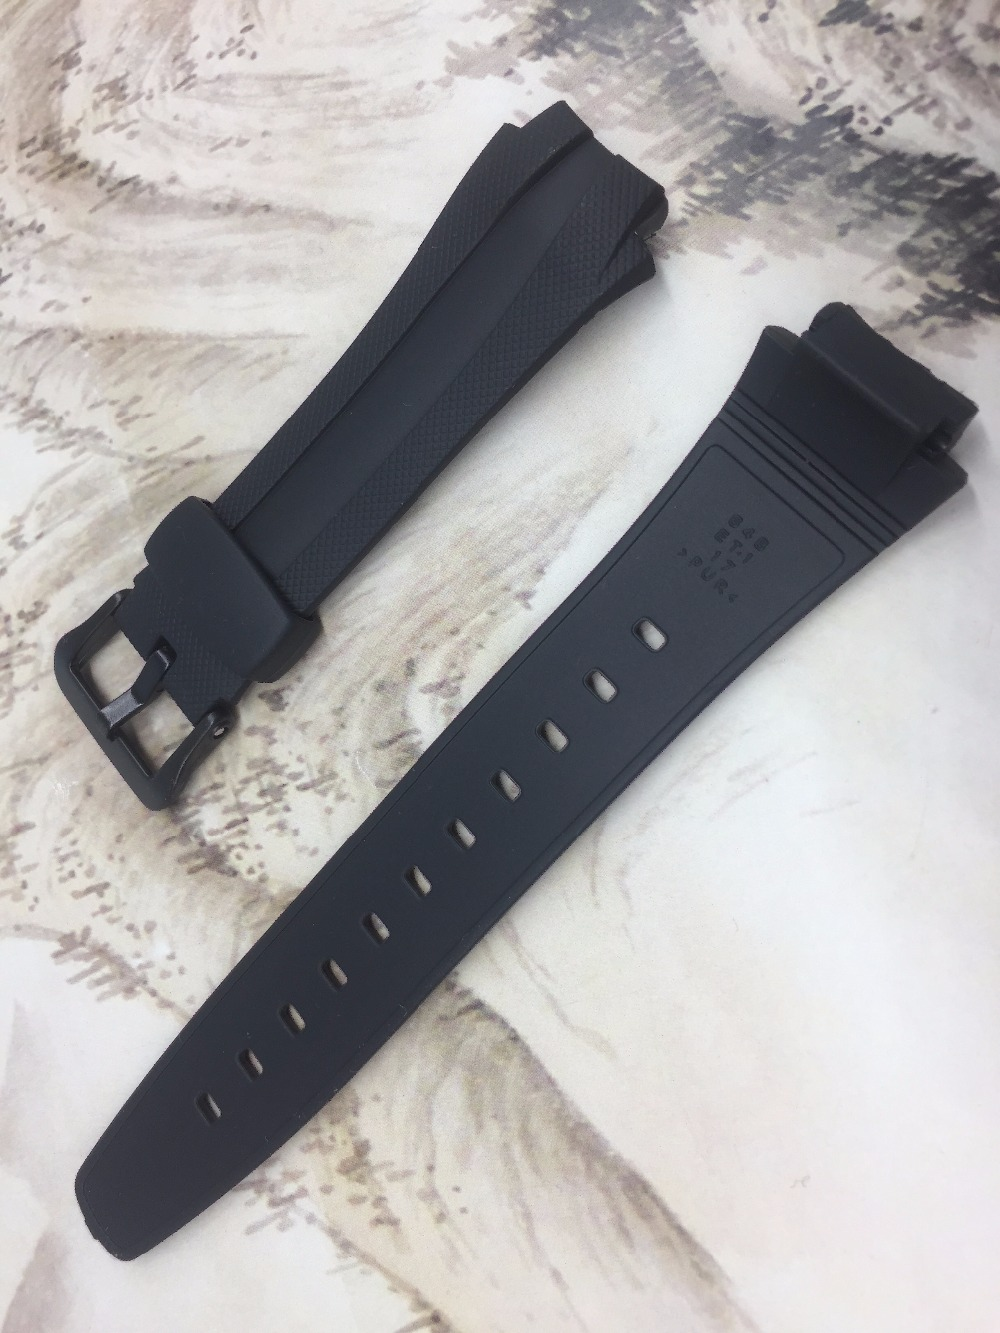 Original Watchband black silicone rubber bracelet for Casio AQ-160/AQ-163 watches accessories uyoung watchband for casio prg 130y prw 1500yj watch bands black silicone rubber strap climbing bracelet